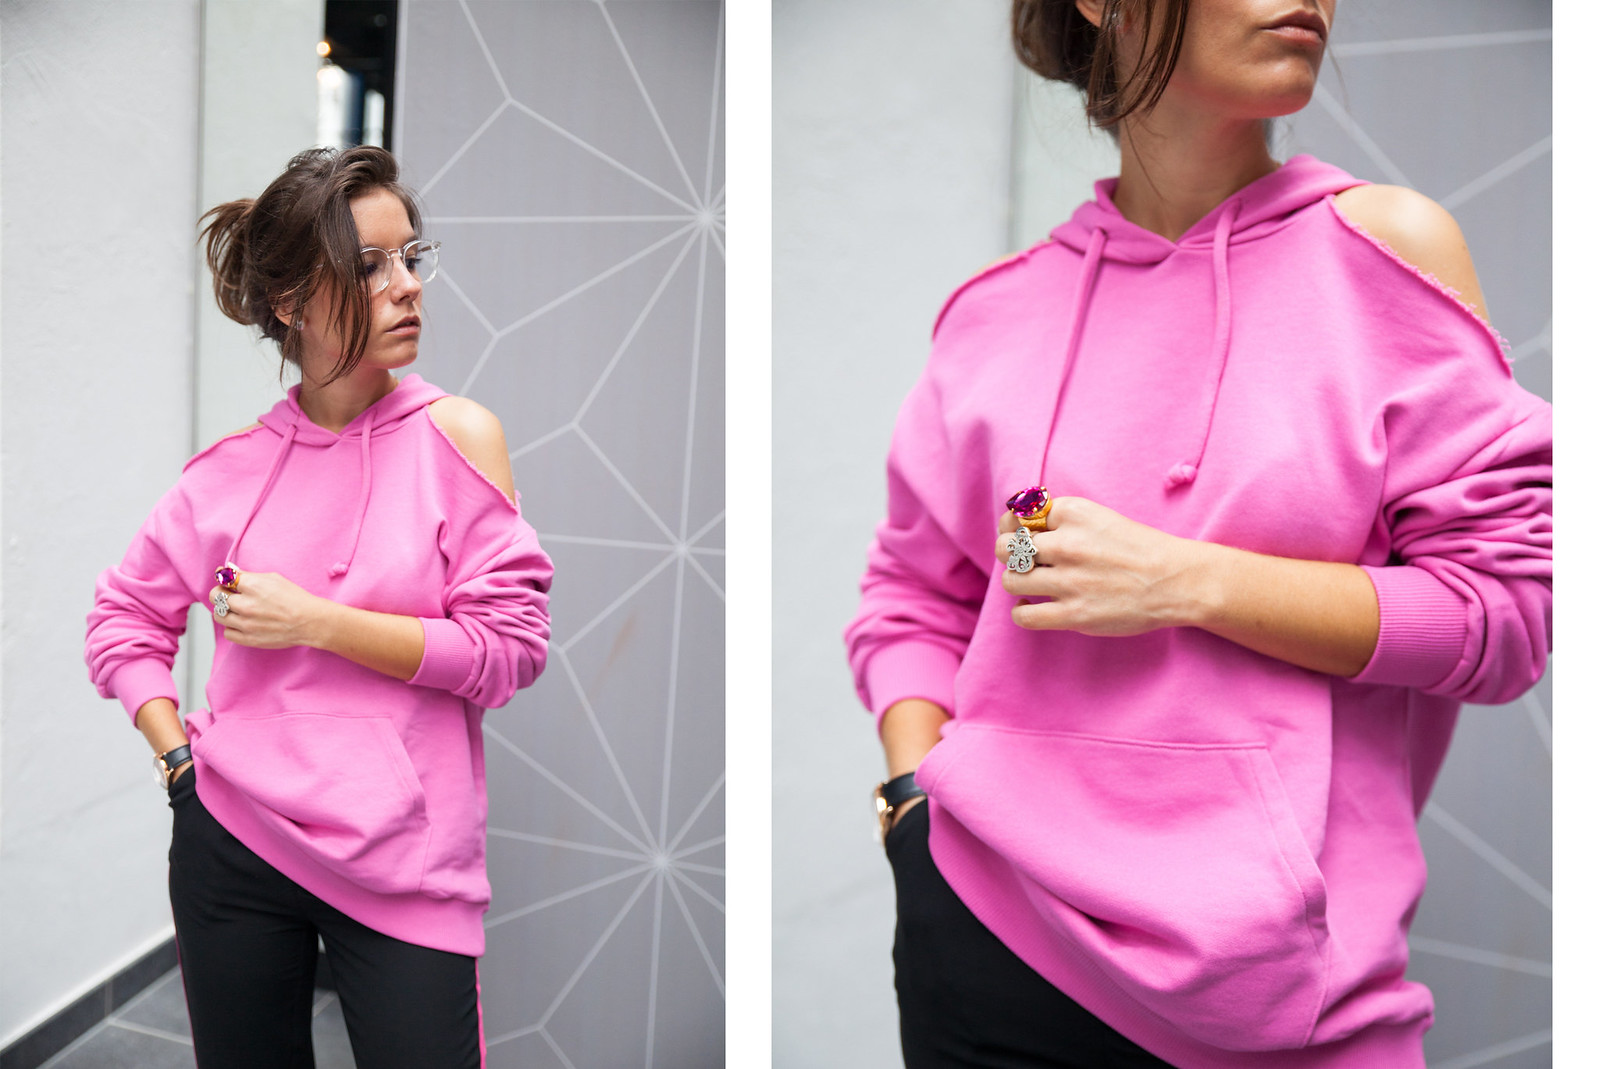 DESCUENTO NAKD SUDADERA ROSA THEGUESTGIRL DULCEIDA SINCERELYJULES COLLAGE VINTAGE INFLUENCER BARCELONA